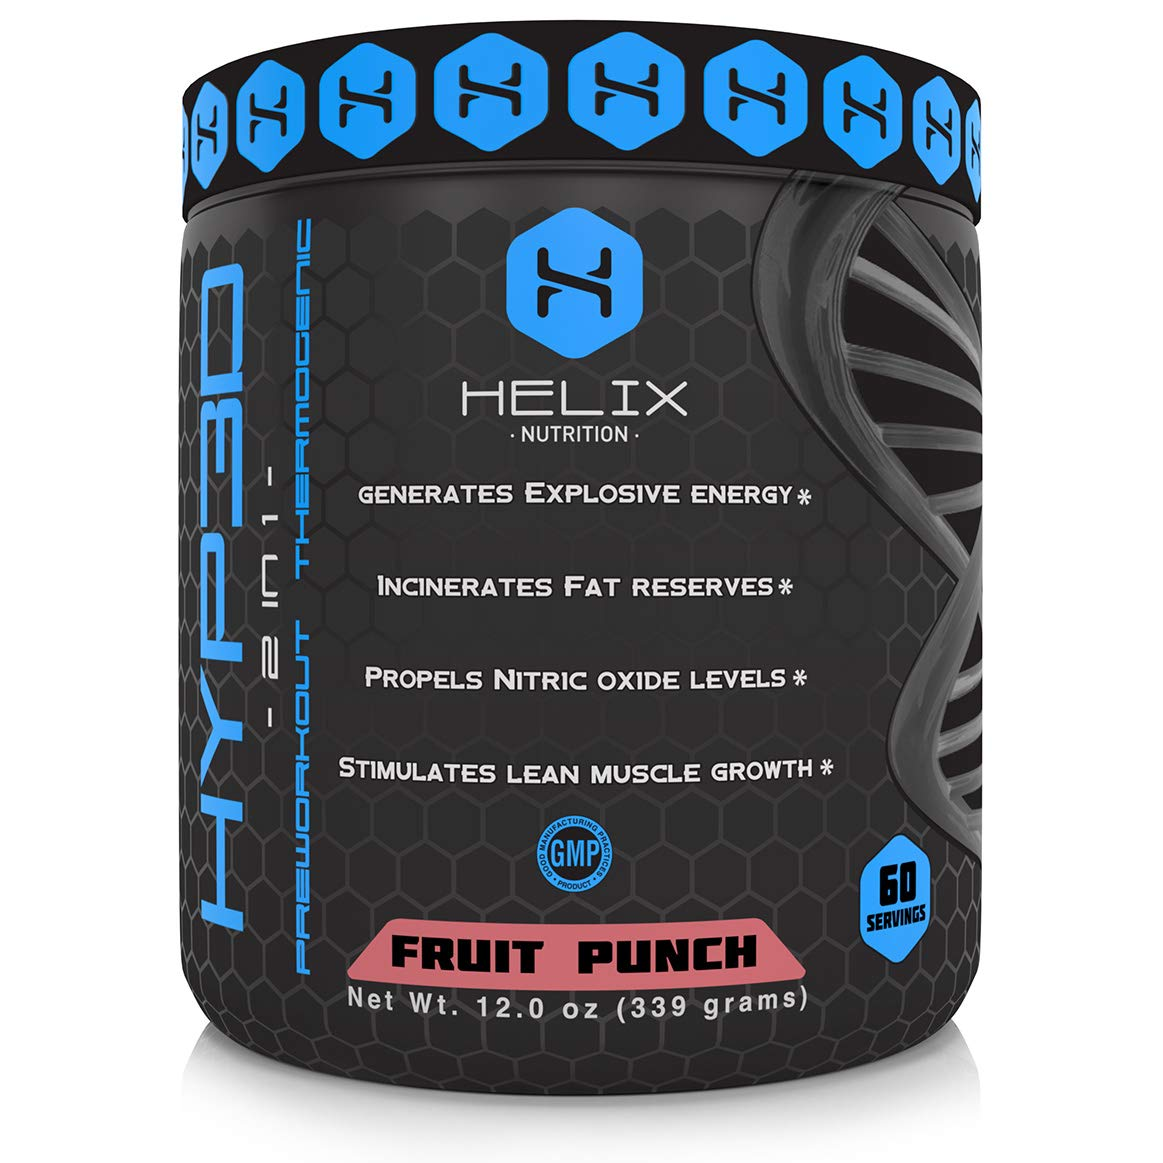 Hyp3d Fruit Punch Pre-Workout: The World's First 2-in-1 Clinically Dosed Pre Workout & Thermogenic. Experience the Rush, Pump and Strength. Money Back Guarantee